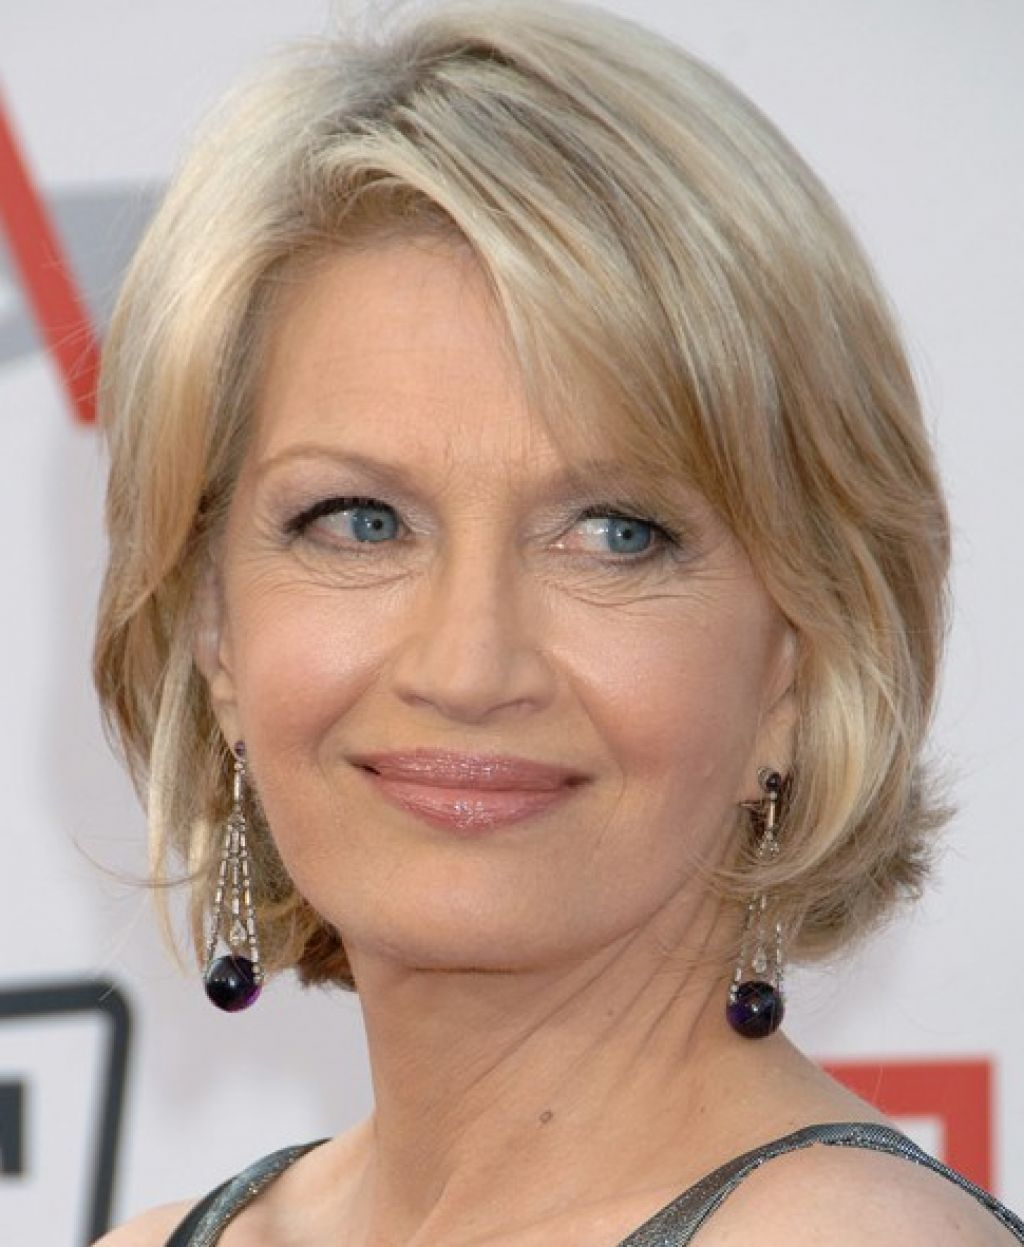 Best short haircuts for woman - Diane Sawyer Short Hair Styles Best Short Haircut For Women Over 60s